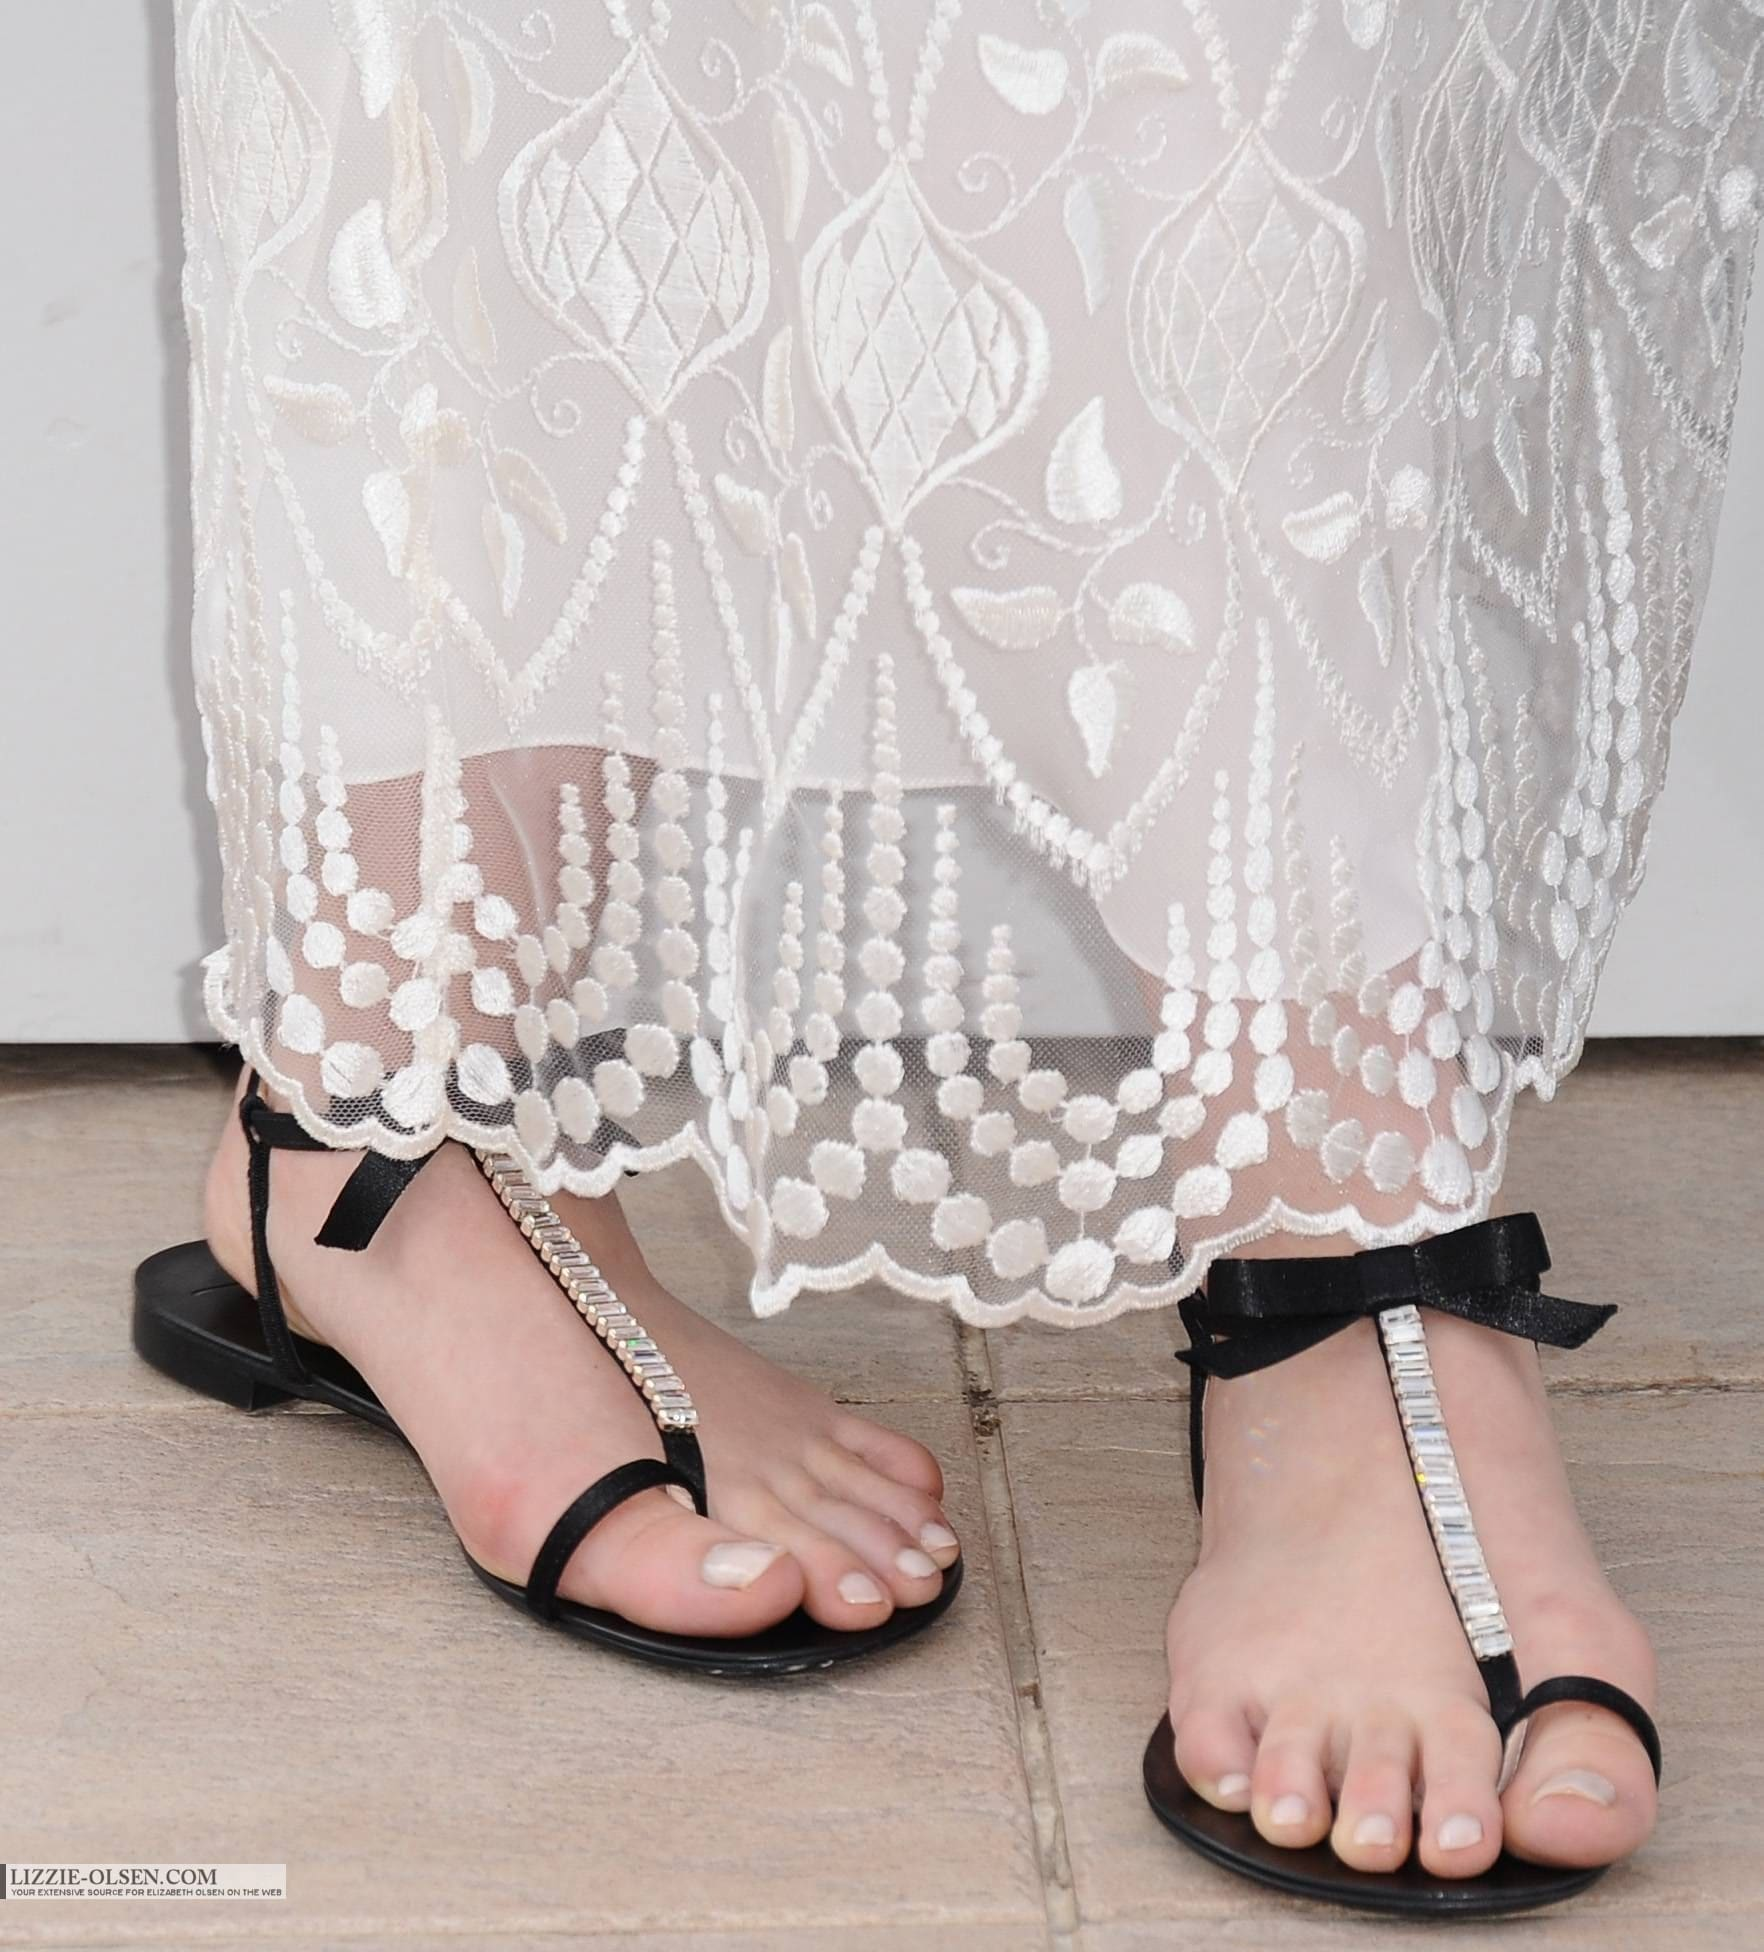 Elizabeth Olsen Sexy Feet Photo